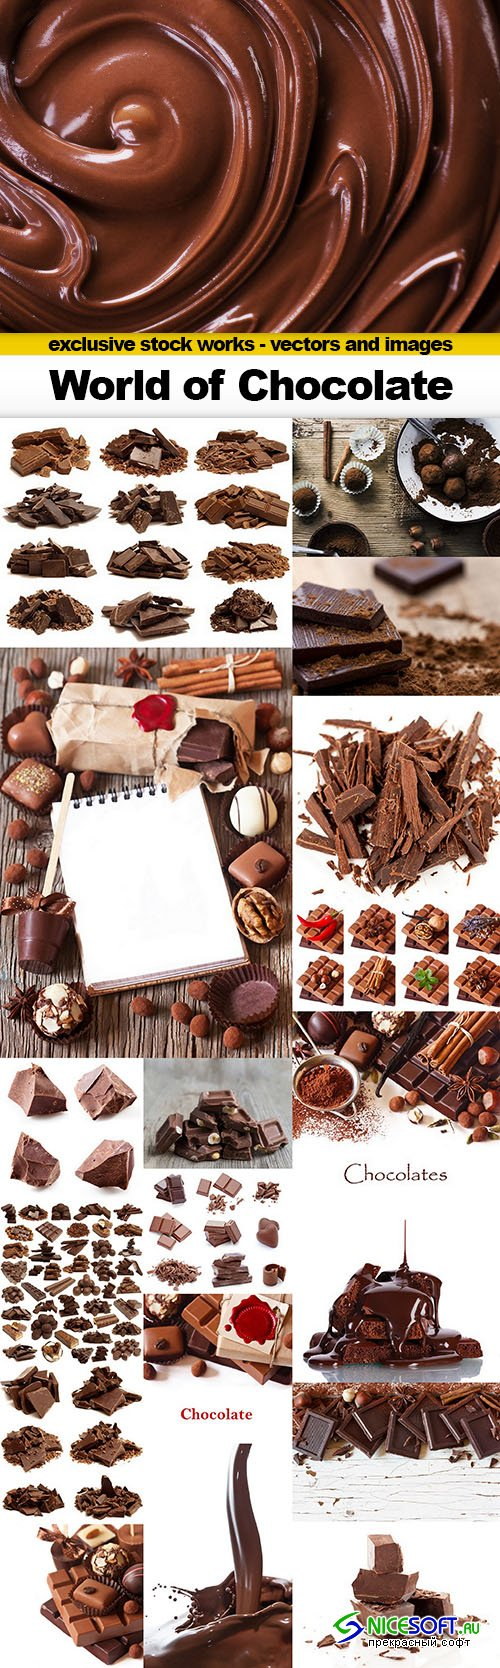 World of Chocolate - 19x UHQ JPEG